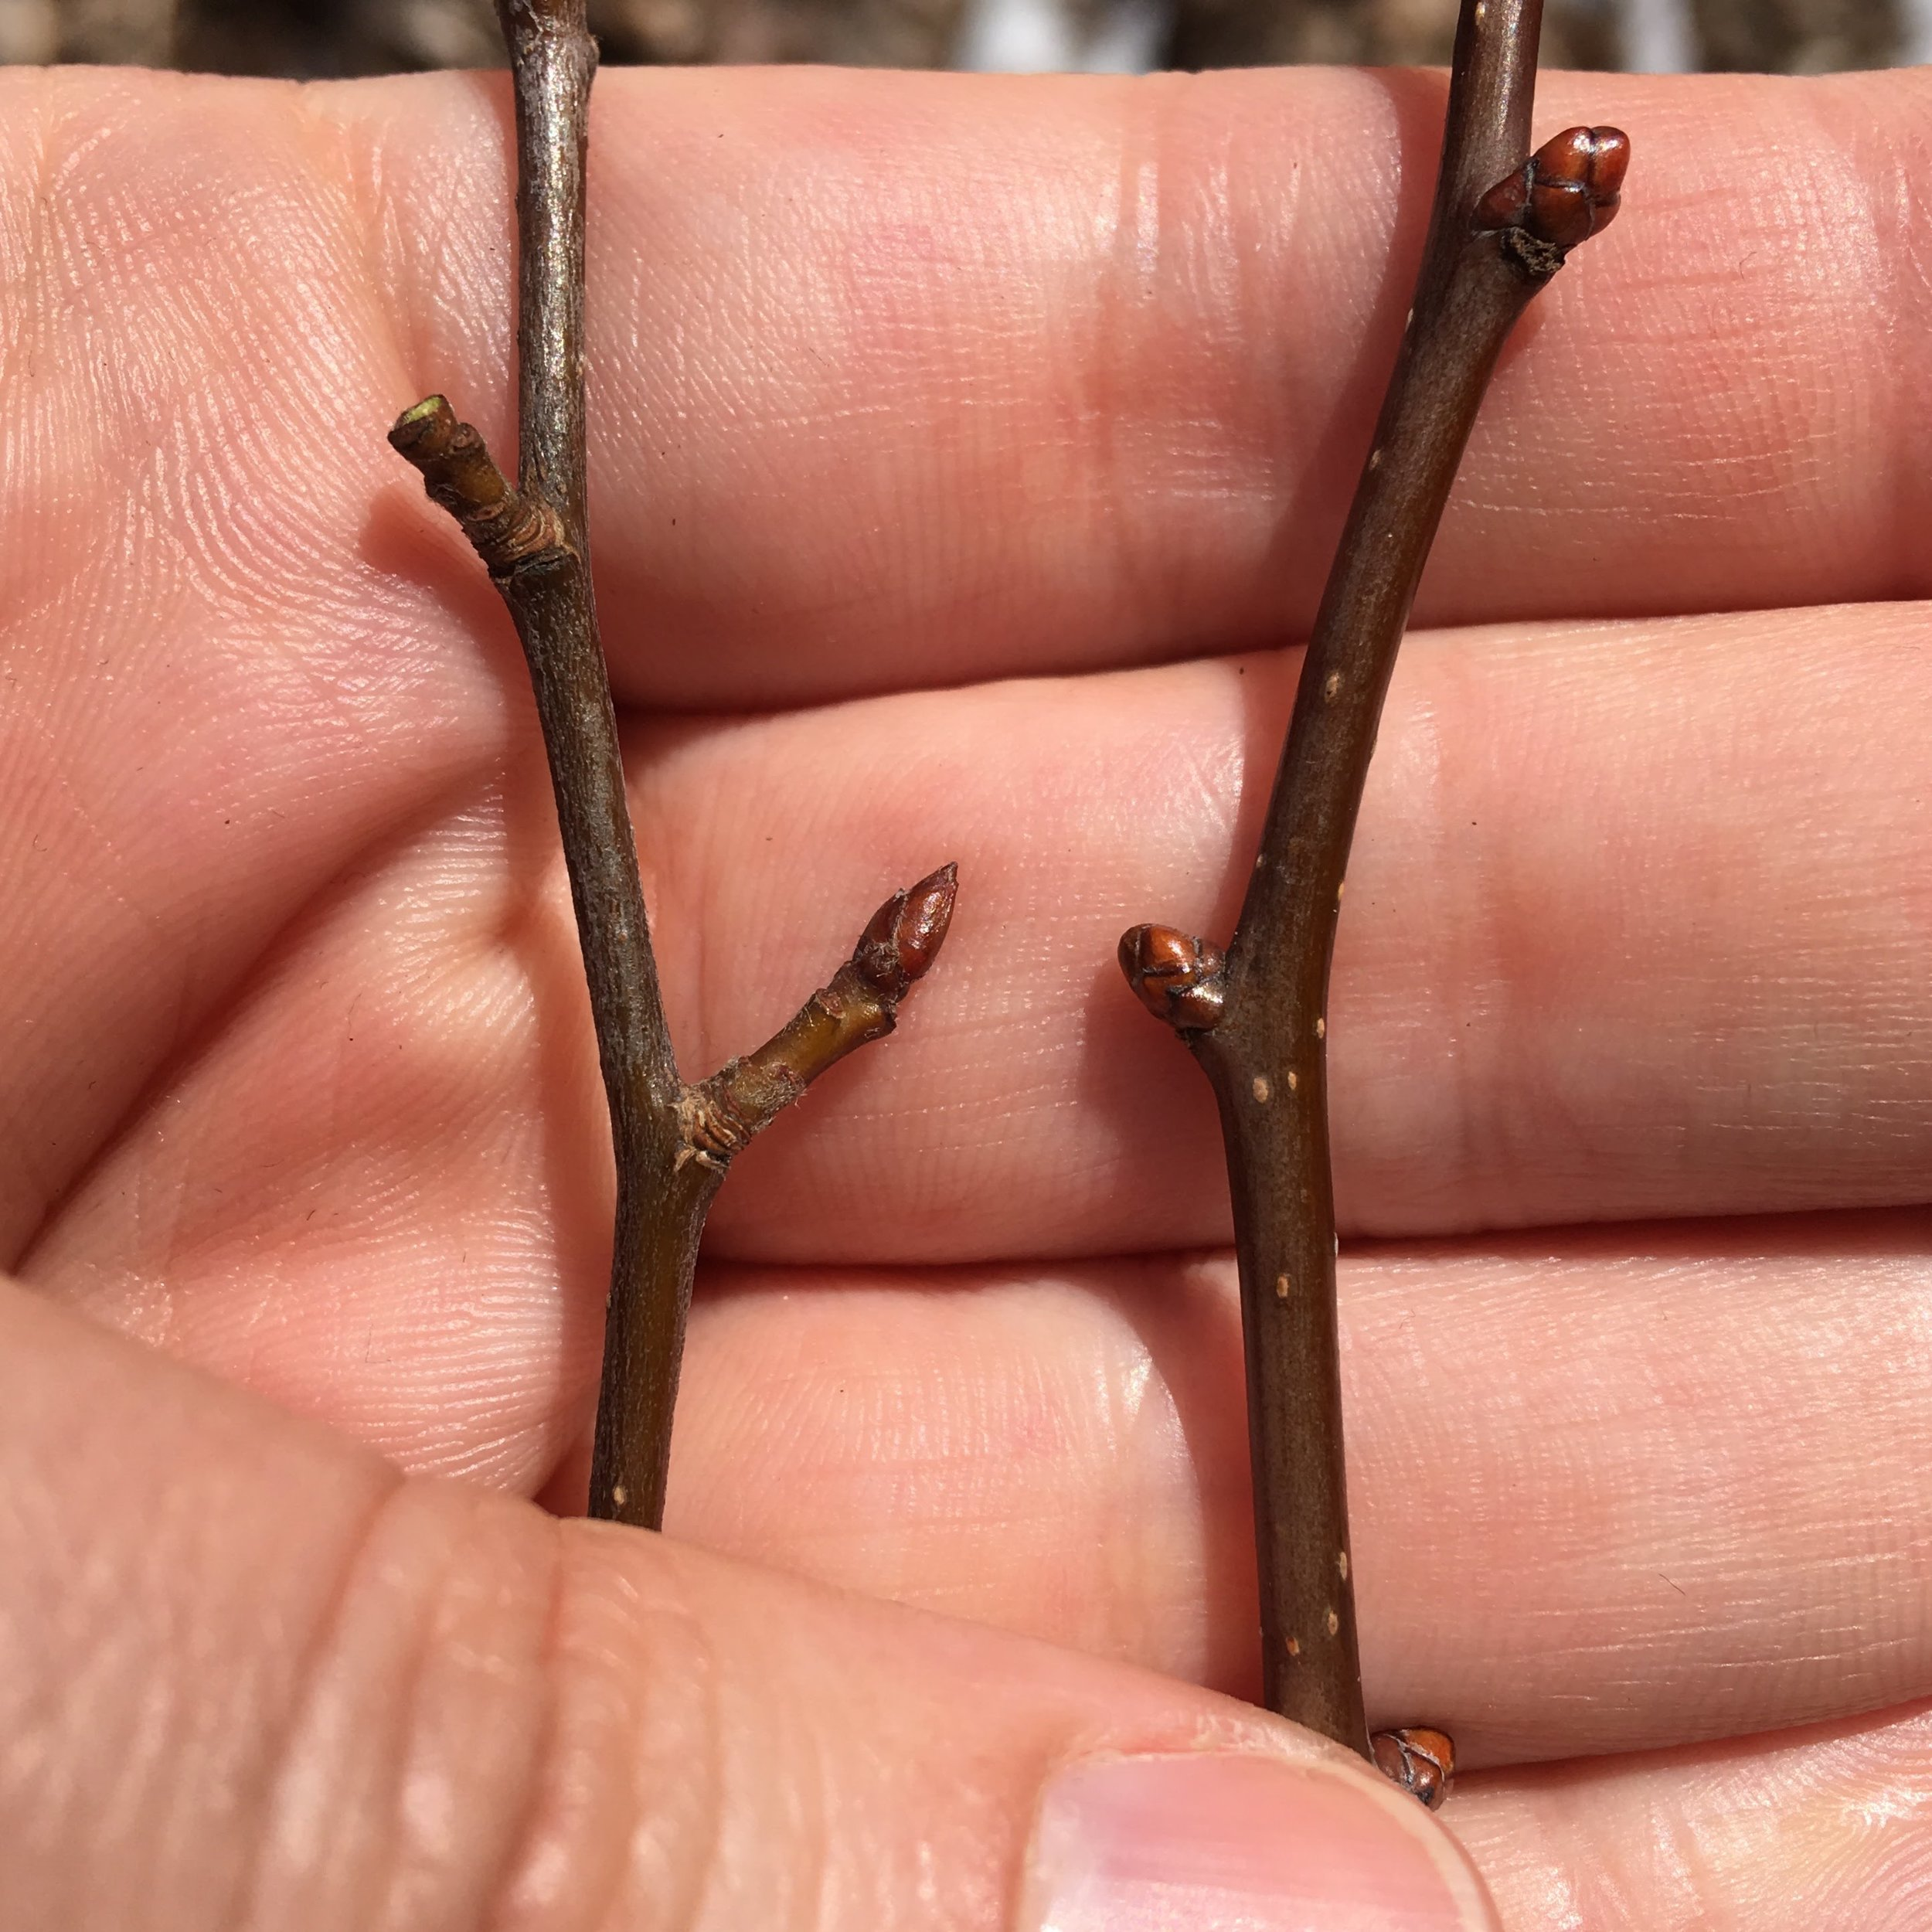 Crab apple ( Malus spp. ) buds are sharply pointed (left), while those of hawthorn ( Crataegus spp. ) are nearly spherical (right).